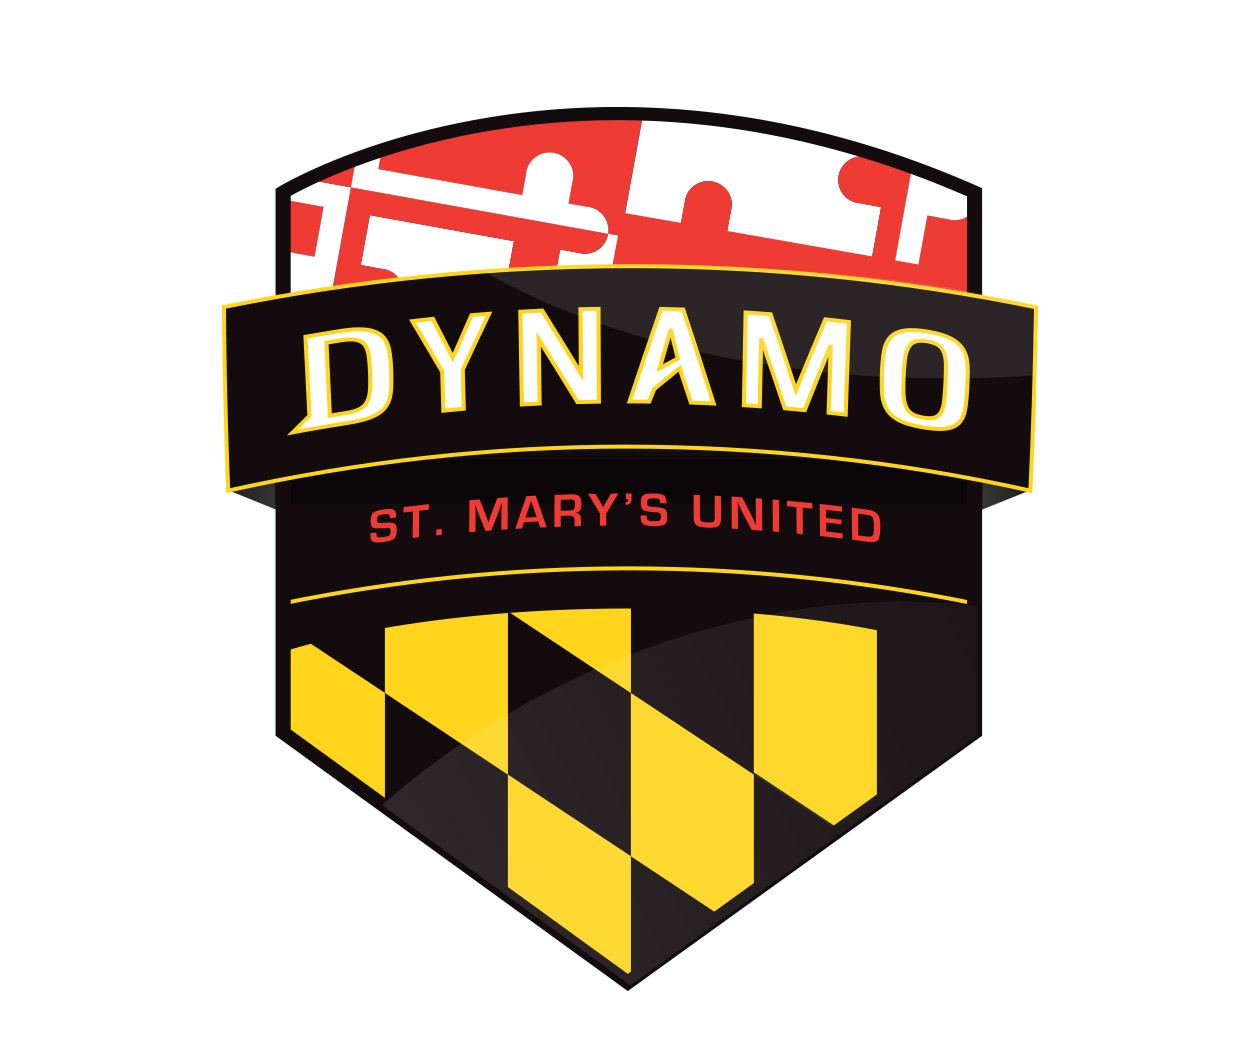 custom soccer logo design for maryland soccer club by jordan fretz design